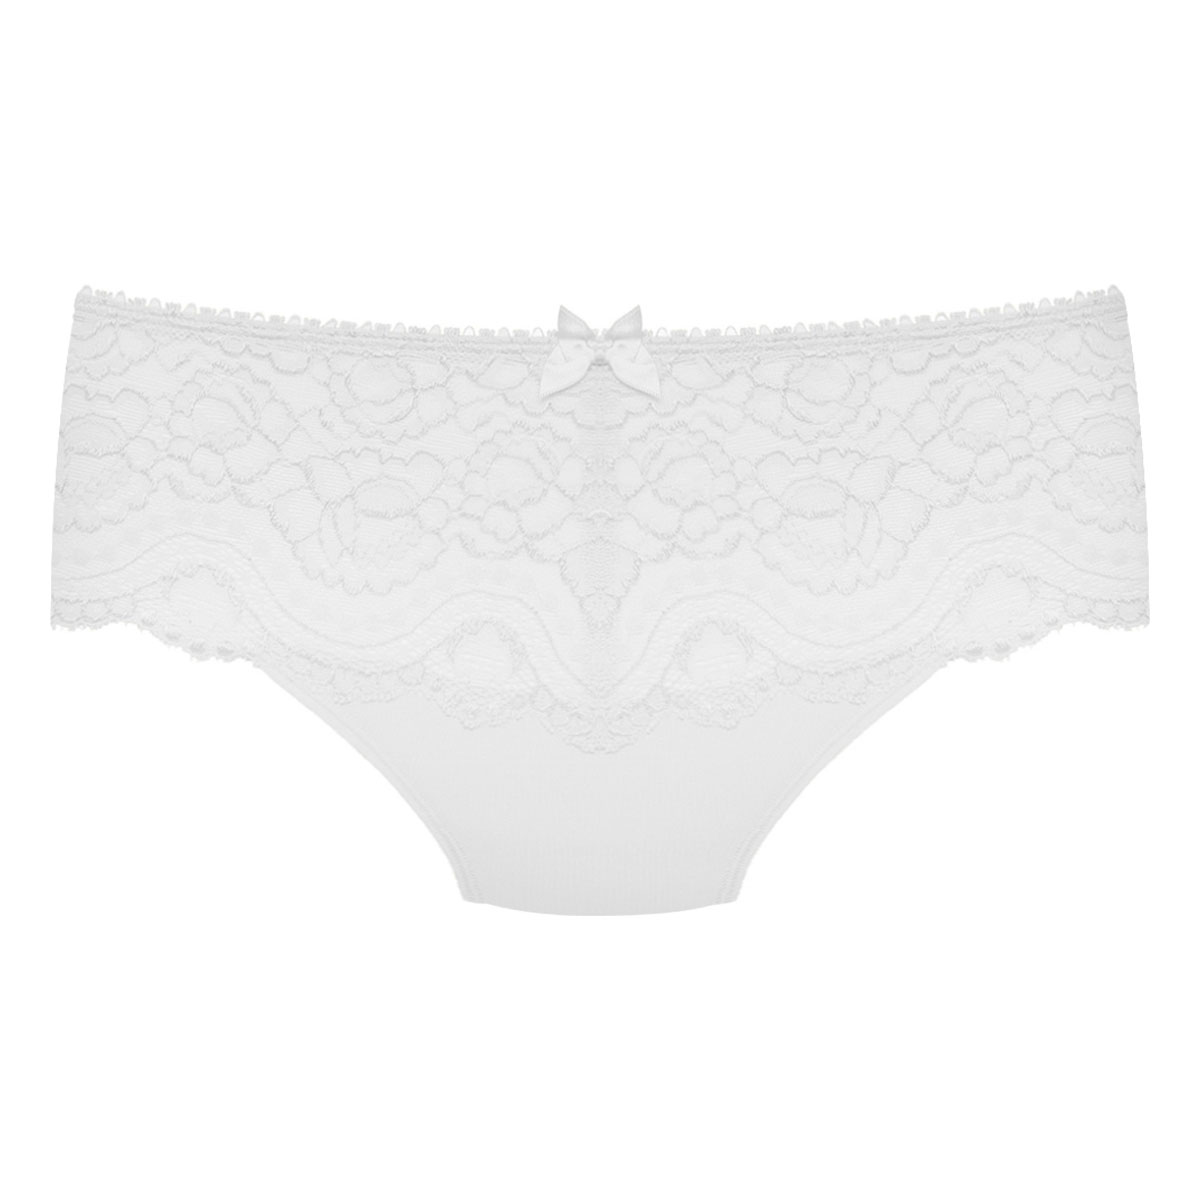 Midi knickers in white – Flower Elegance, , PLAYTEX